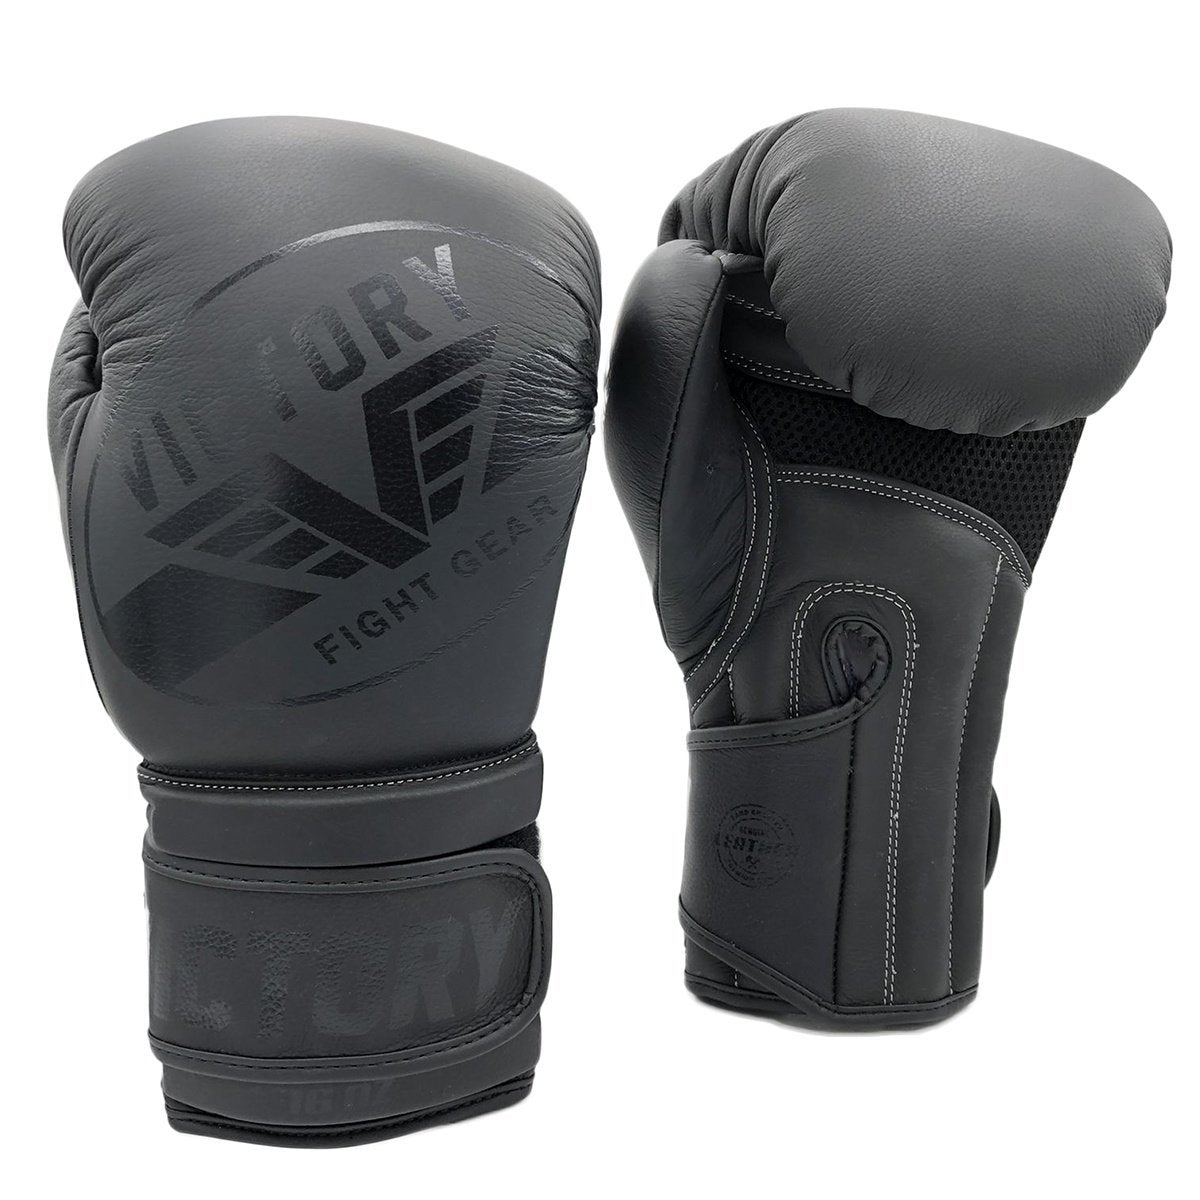 VICTORY GLOVES IMPACT PRO SERIES LEATHER BLACK - MSM FIGHT SHOPVICTORY FIGHT GEAR